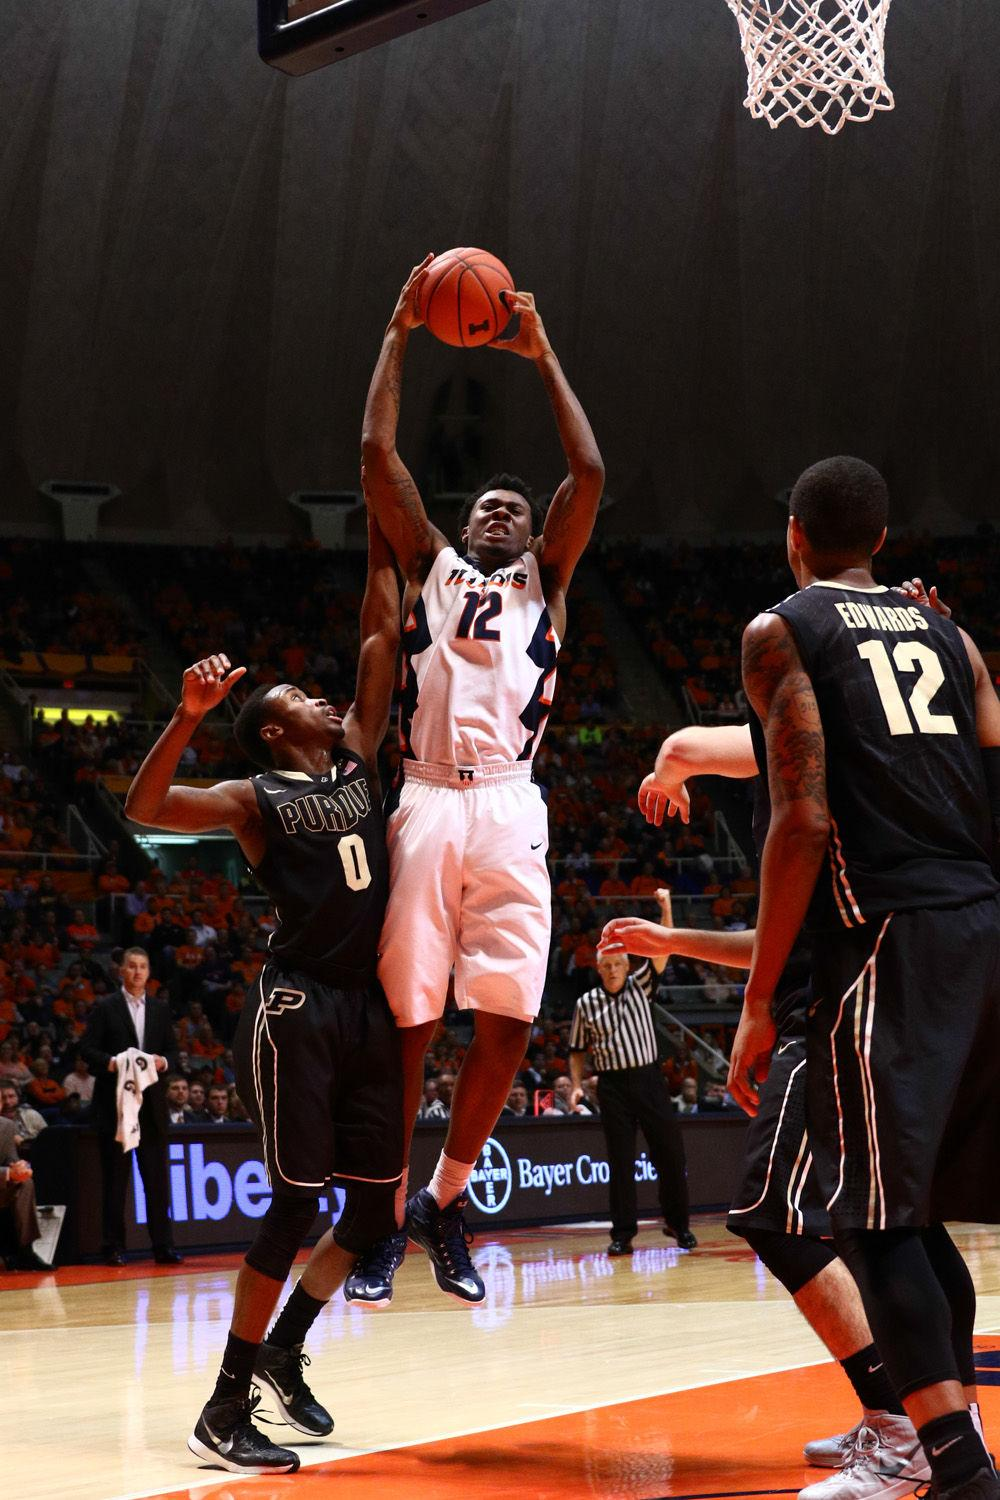 Illinois' Leron Black grabs the offensive rebound during the game against Purdue at State Farm Center on Jan. 21, 2015. The Illini won 66-57.